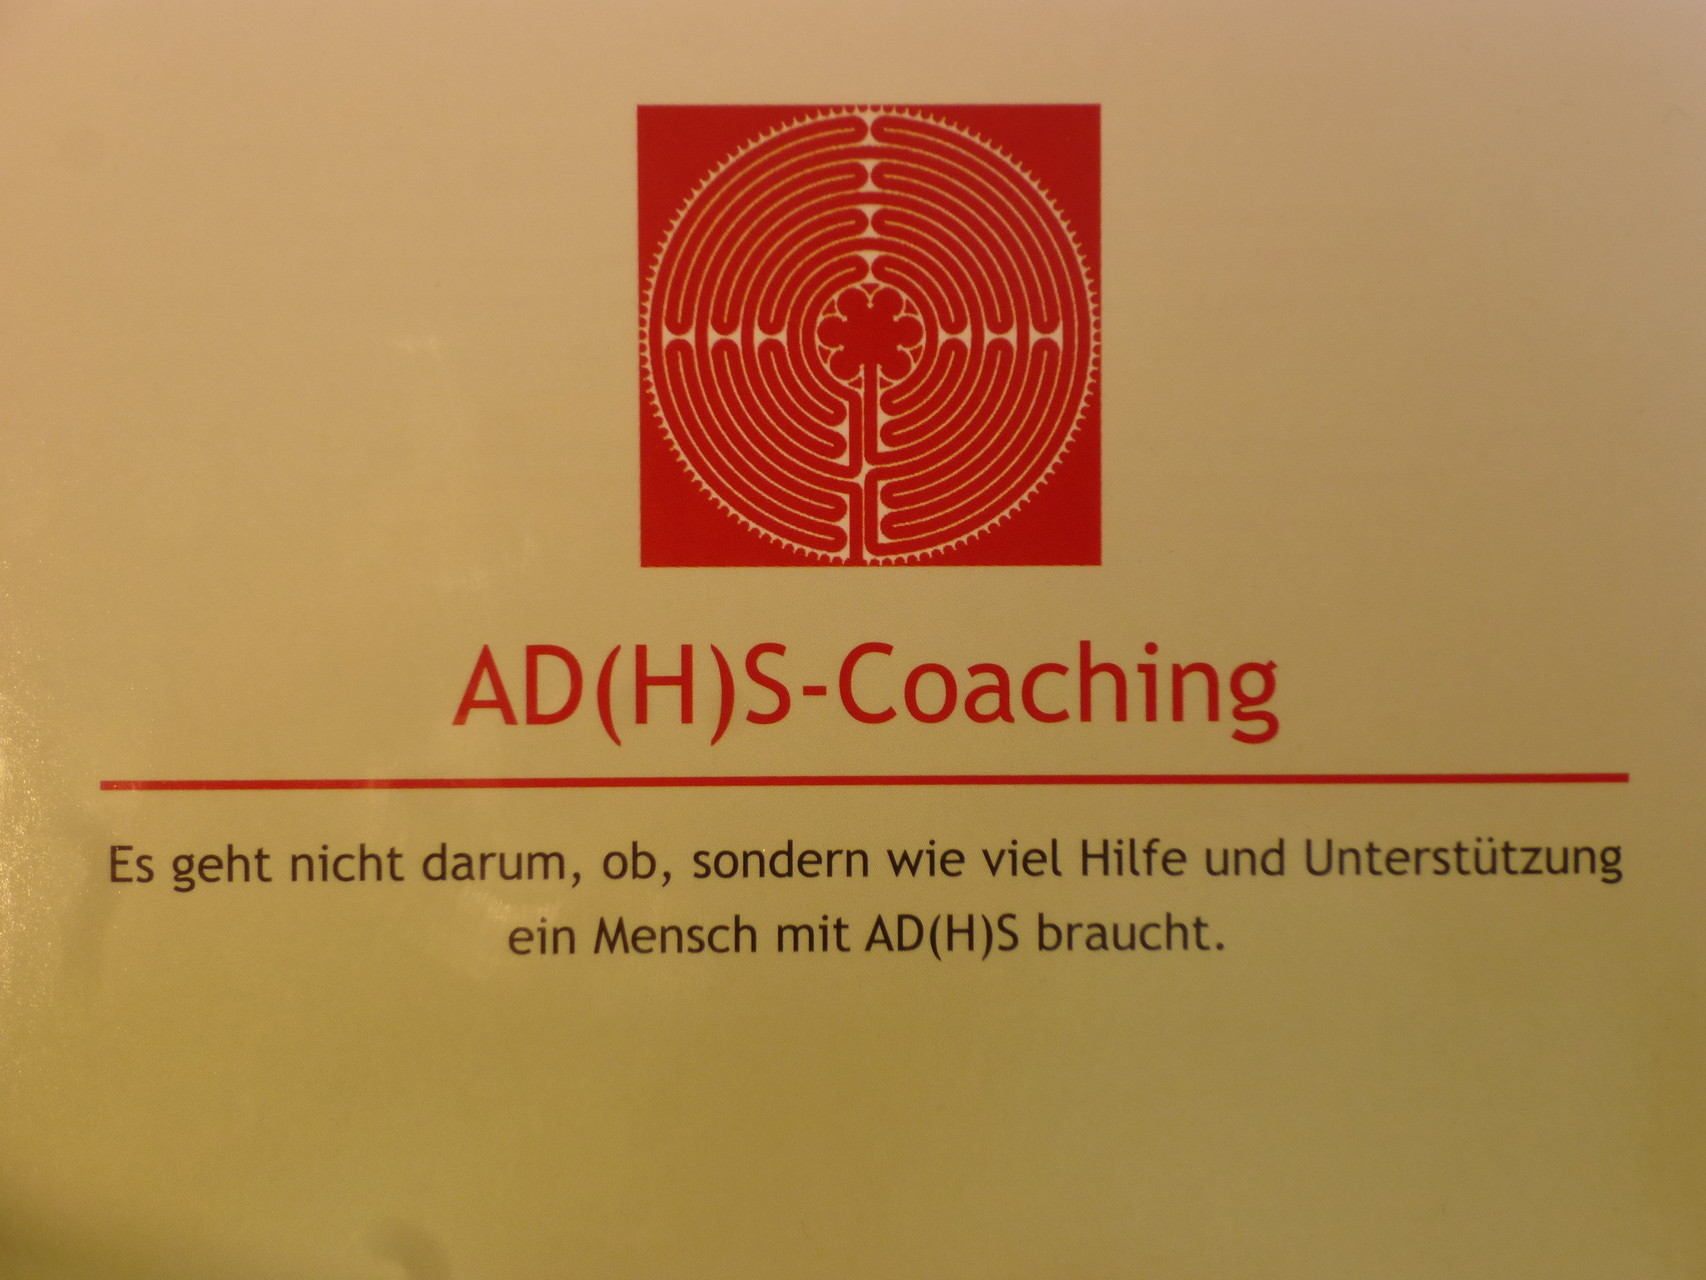 Flyer AD(H)S-Coaching!